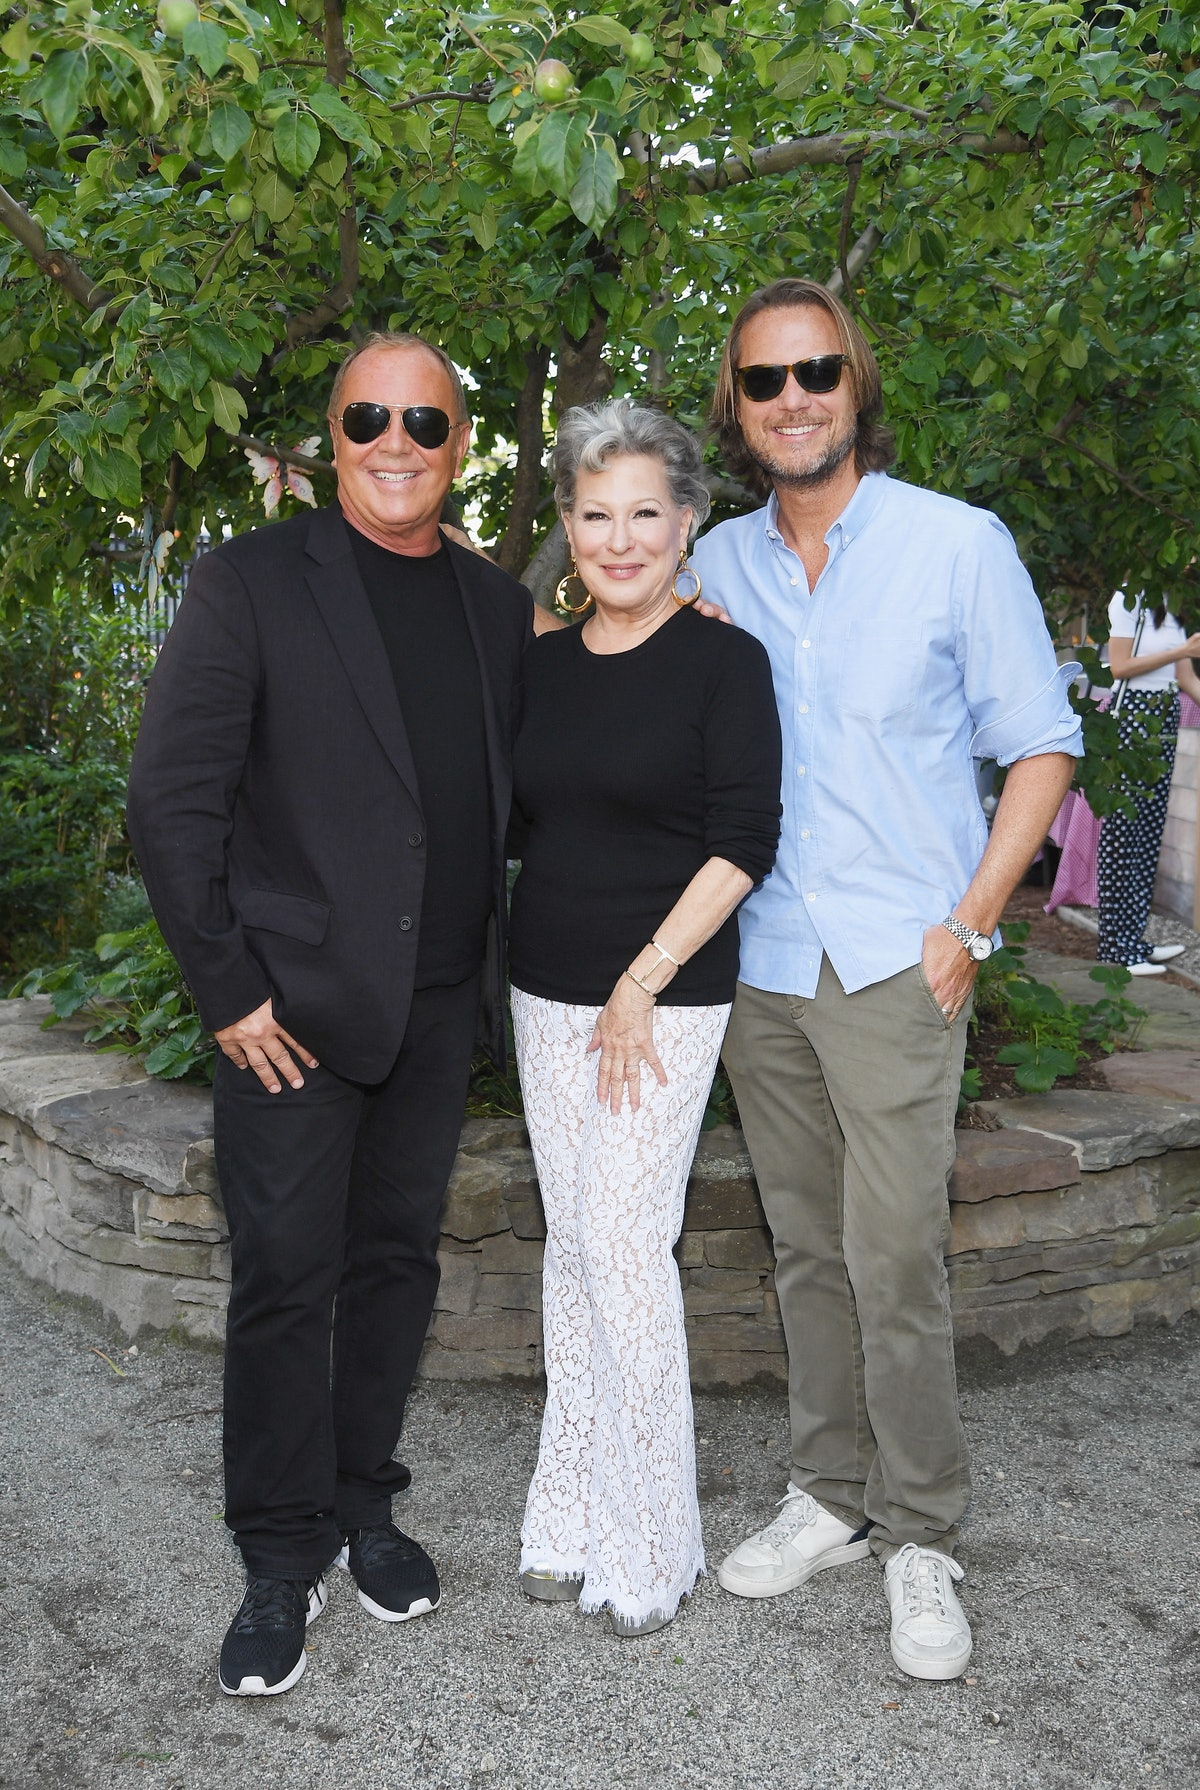 Michael Kors And the New York Restoration Project Celebrate The Opening Of The Essex Street Community Garden